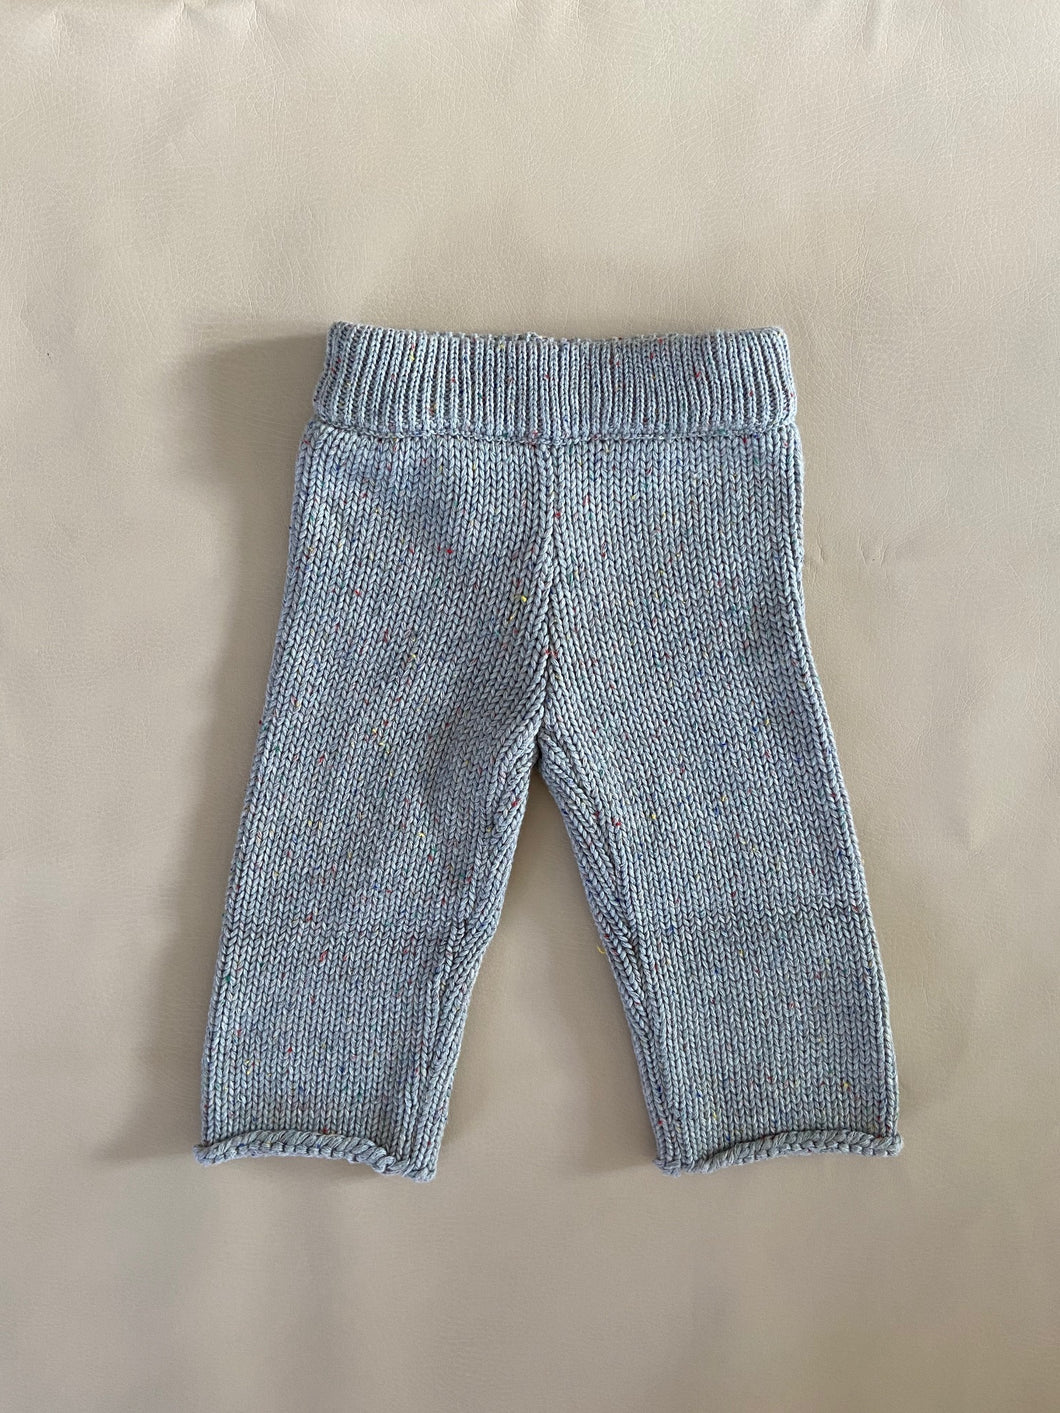 Peppa Sprinkle Knit Pant - Grey